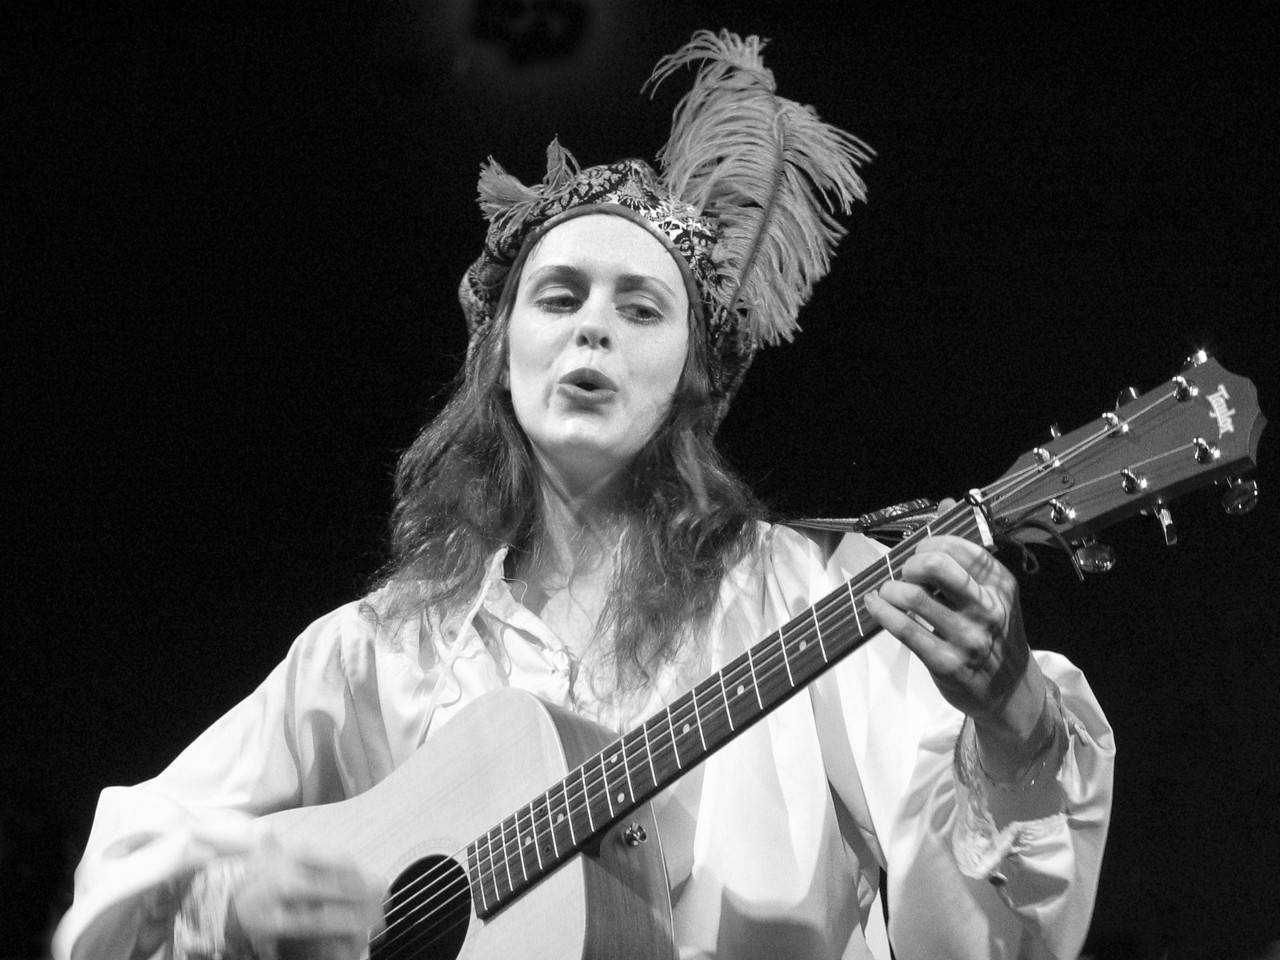 """SINGER-OFF BROADWAY <br />  Candice Holdorf- singing in the New York off Broadway production of: """"The Curate Shakespeare's As You Like It"""" (c)V. Roger Rubin 2004"""